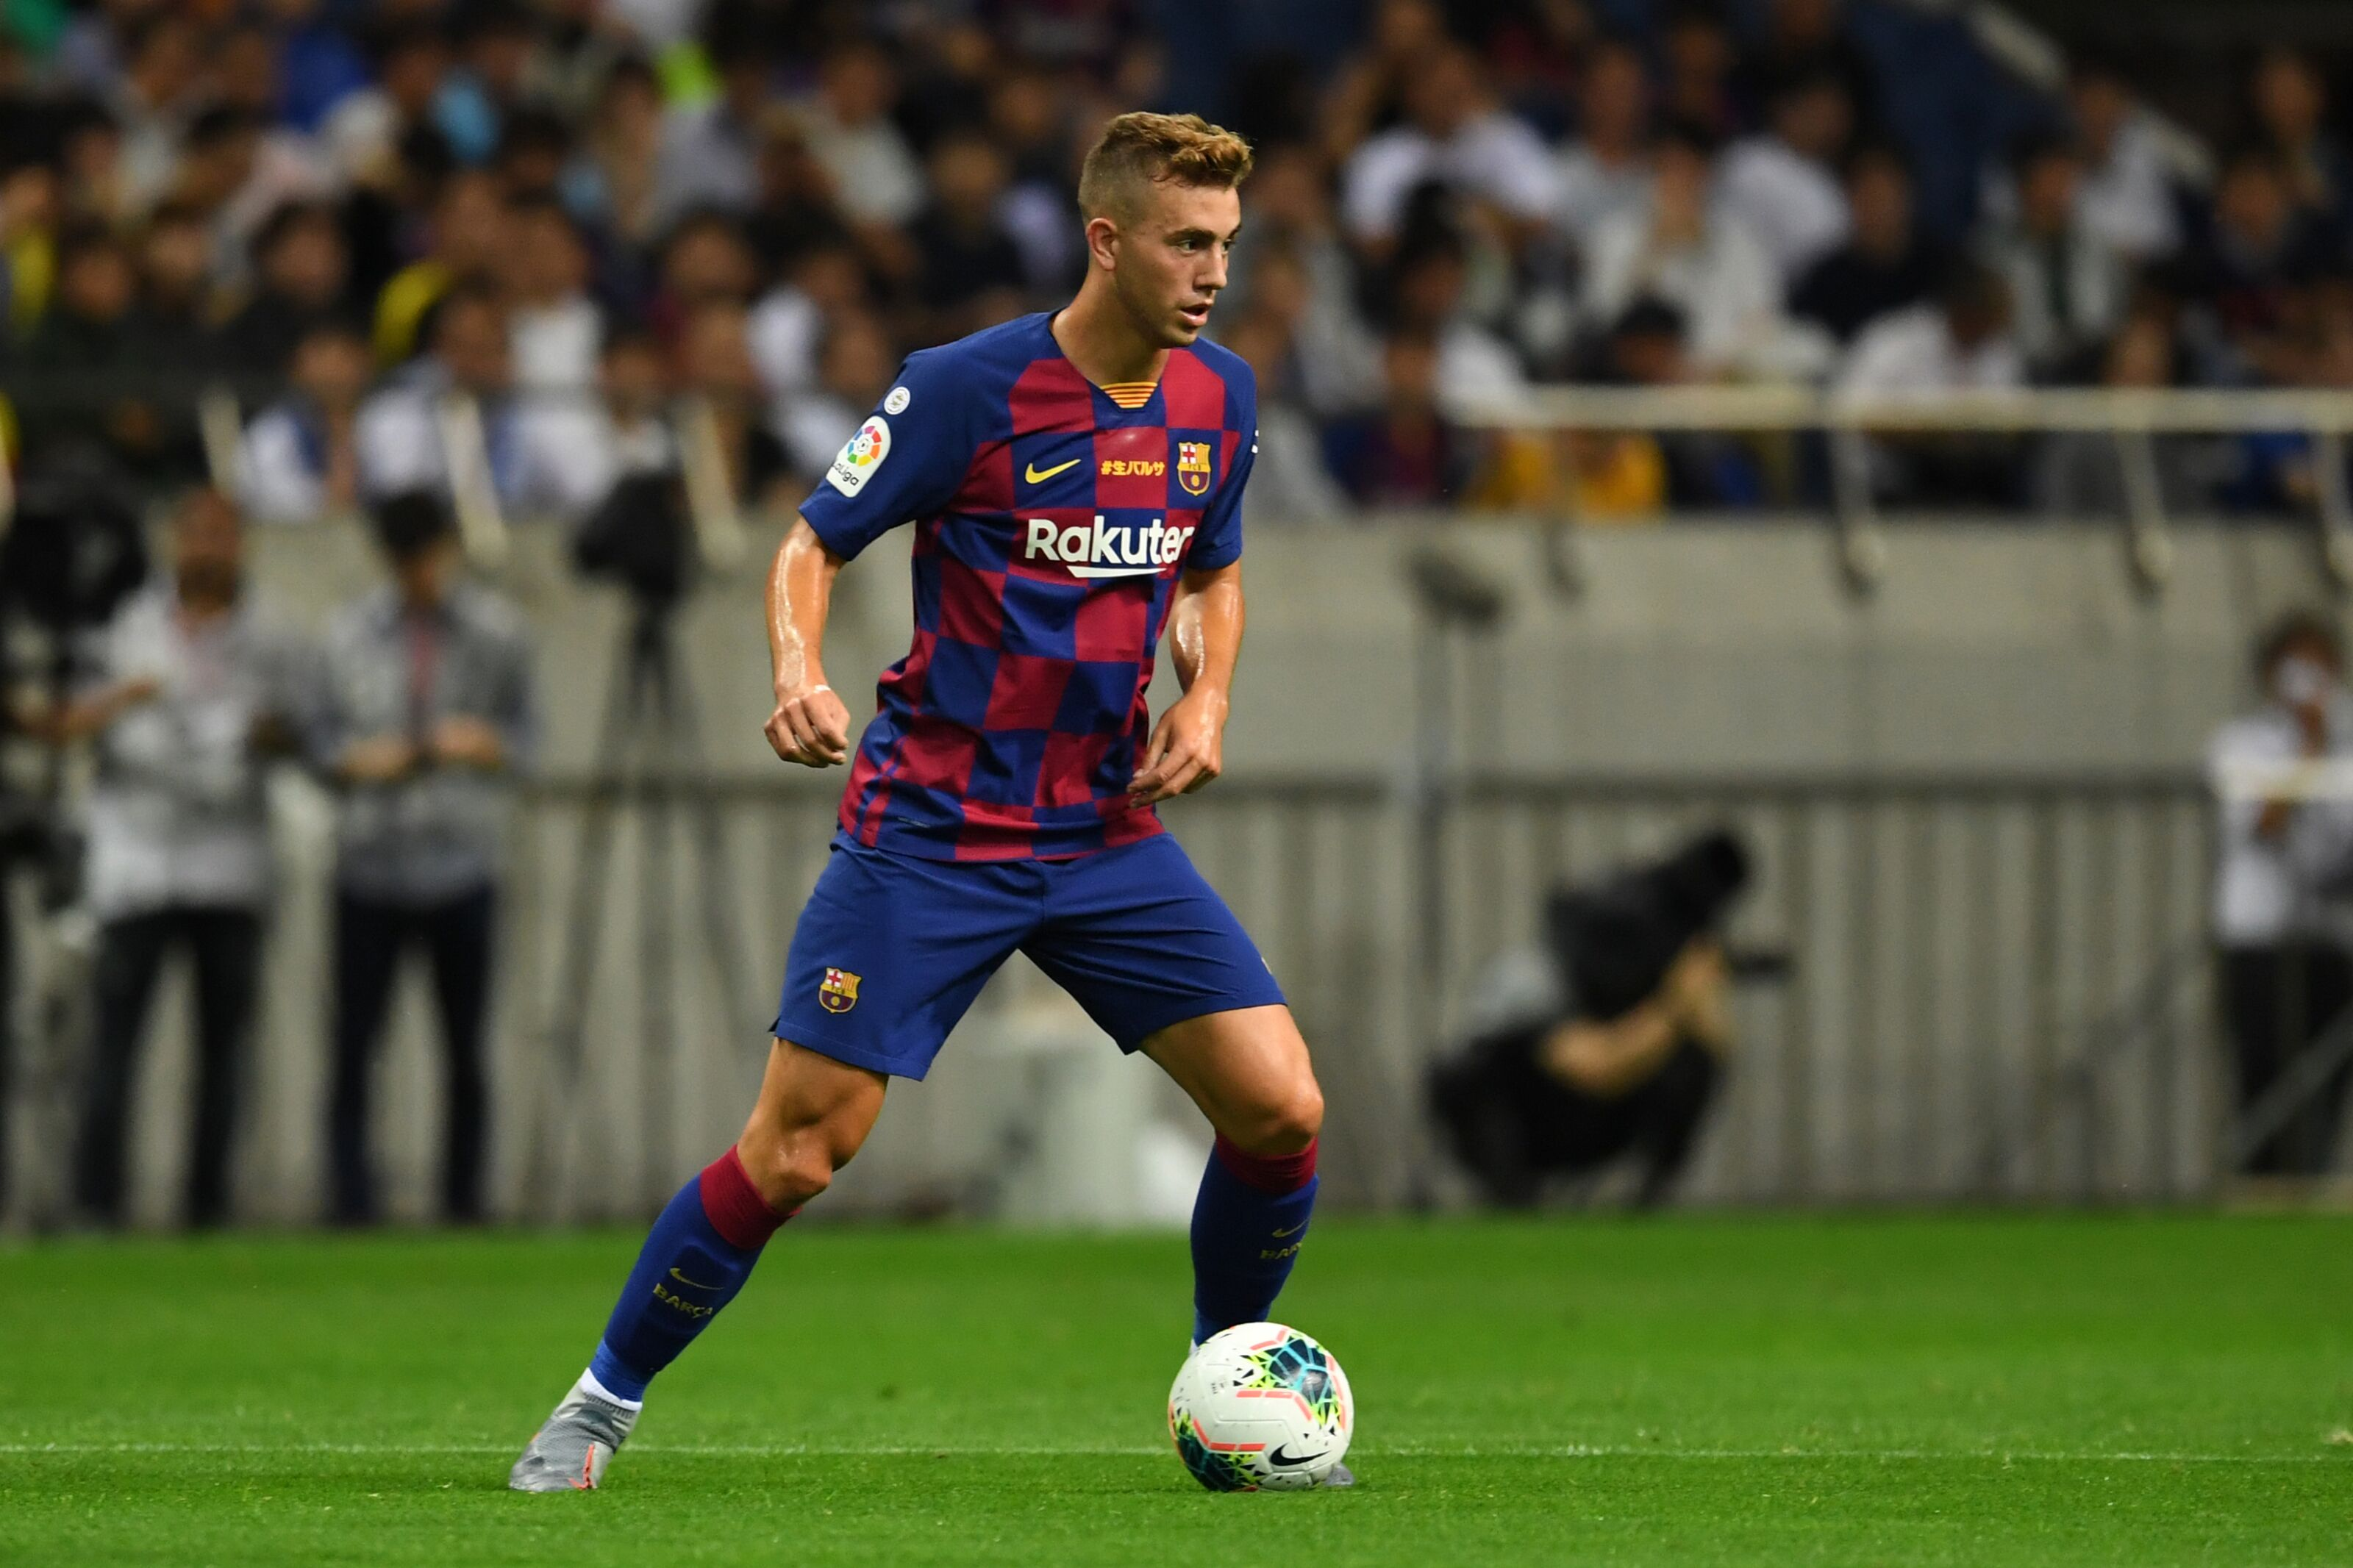 Two promising Barcelona youngsters set for loan moves